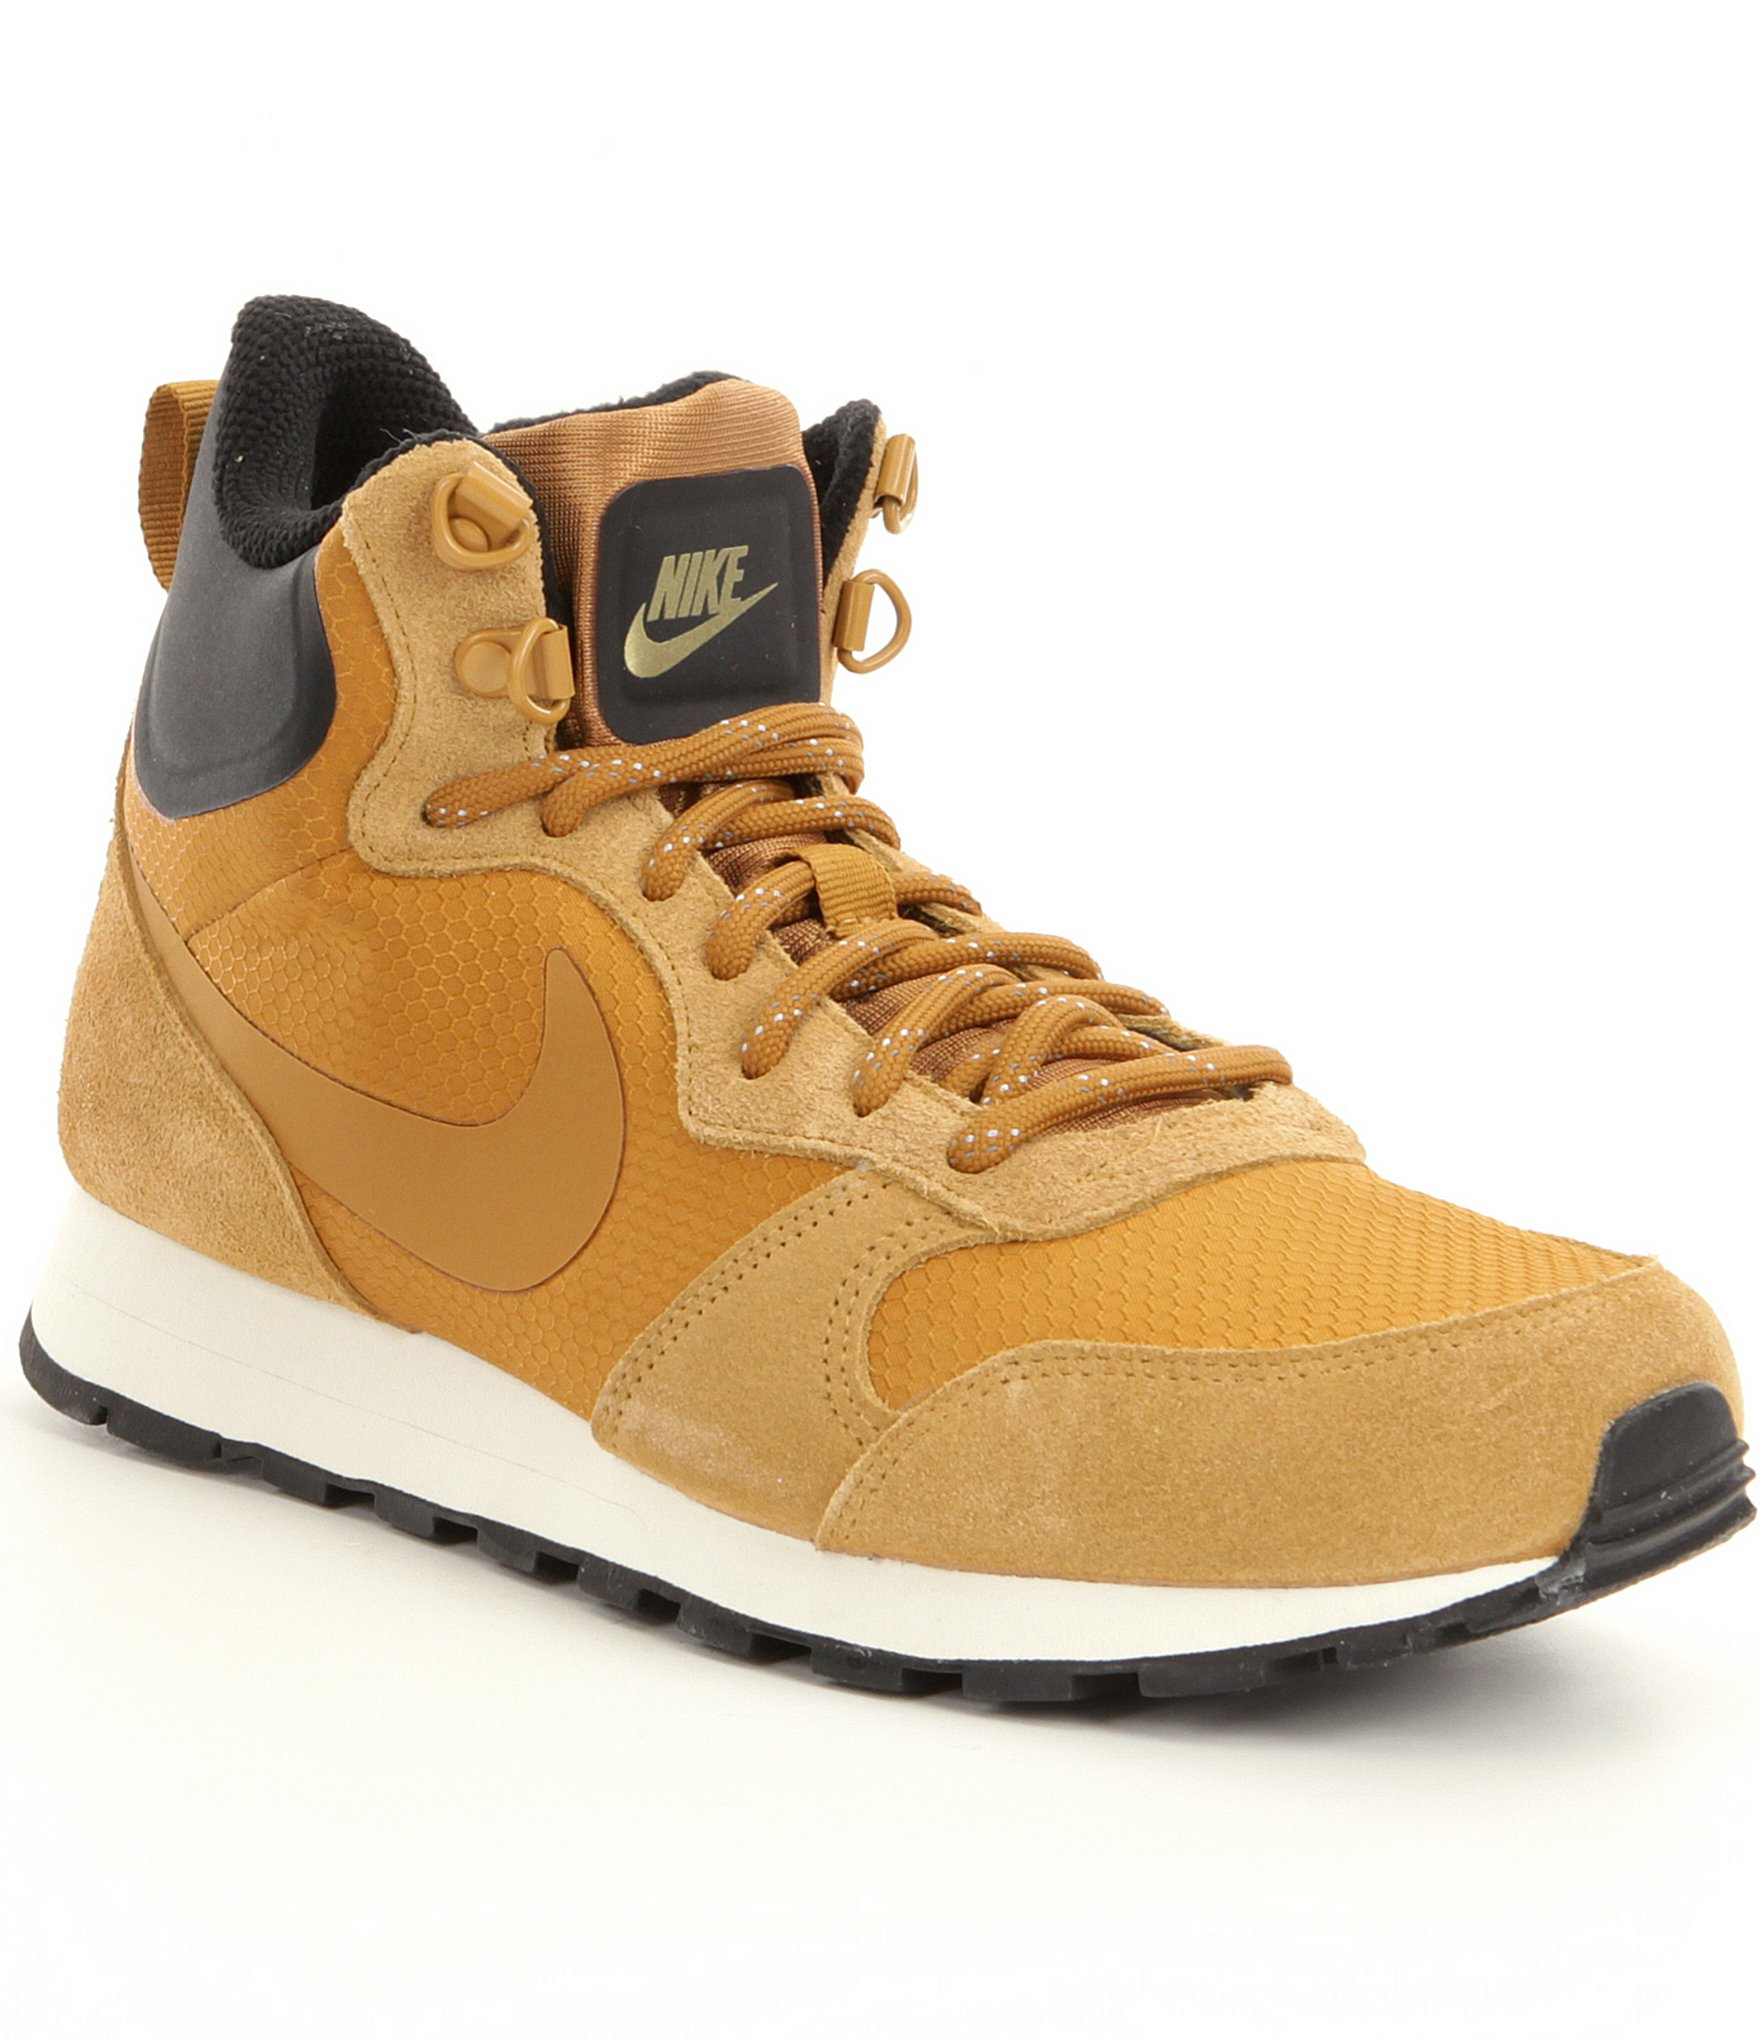 17aefde0095f9 Lyst - Nike Men ́s Md Runner 2 Mid Premium Lifestyle Shoes for Men